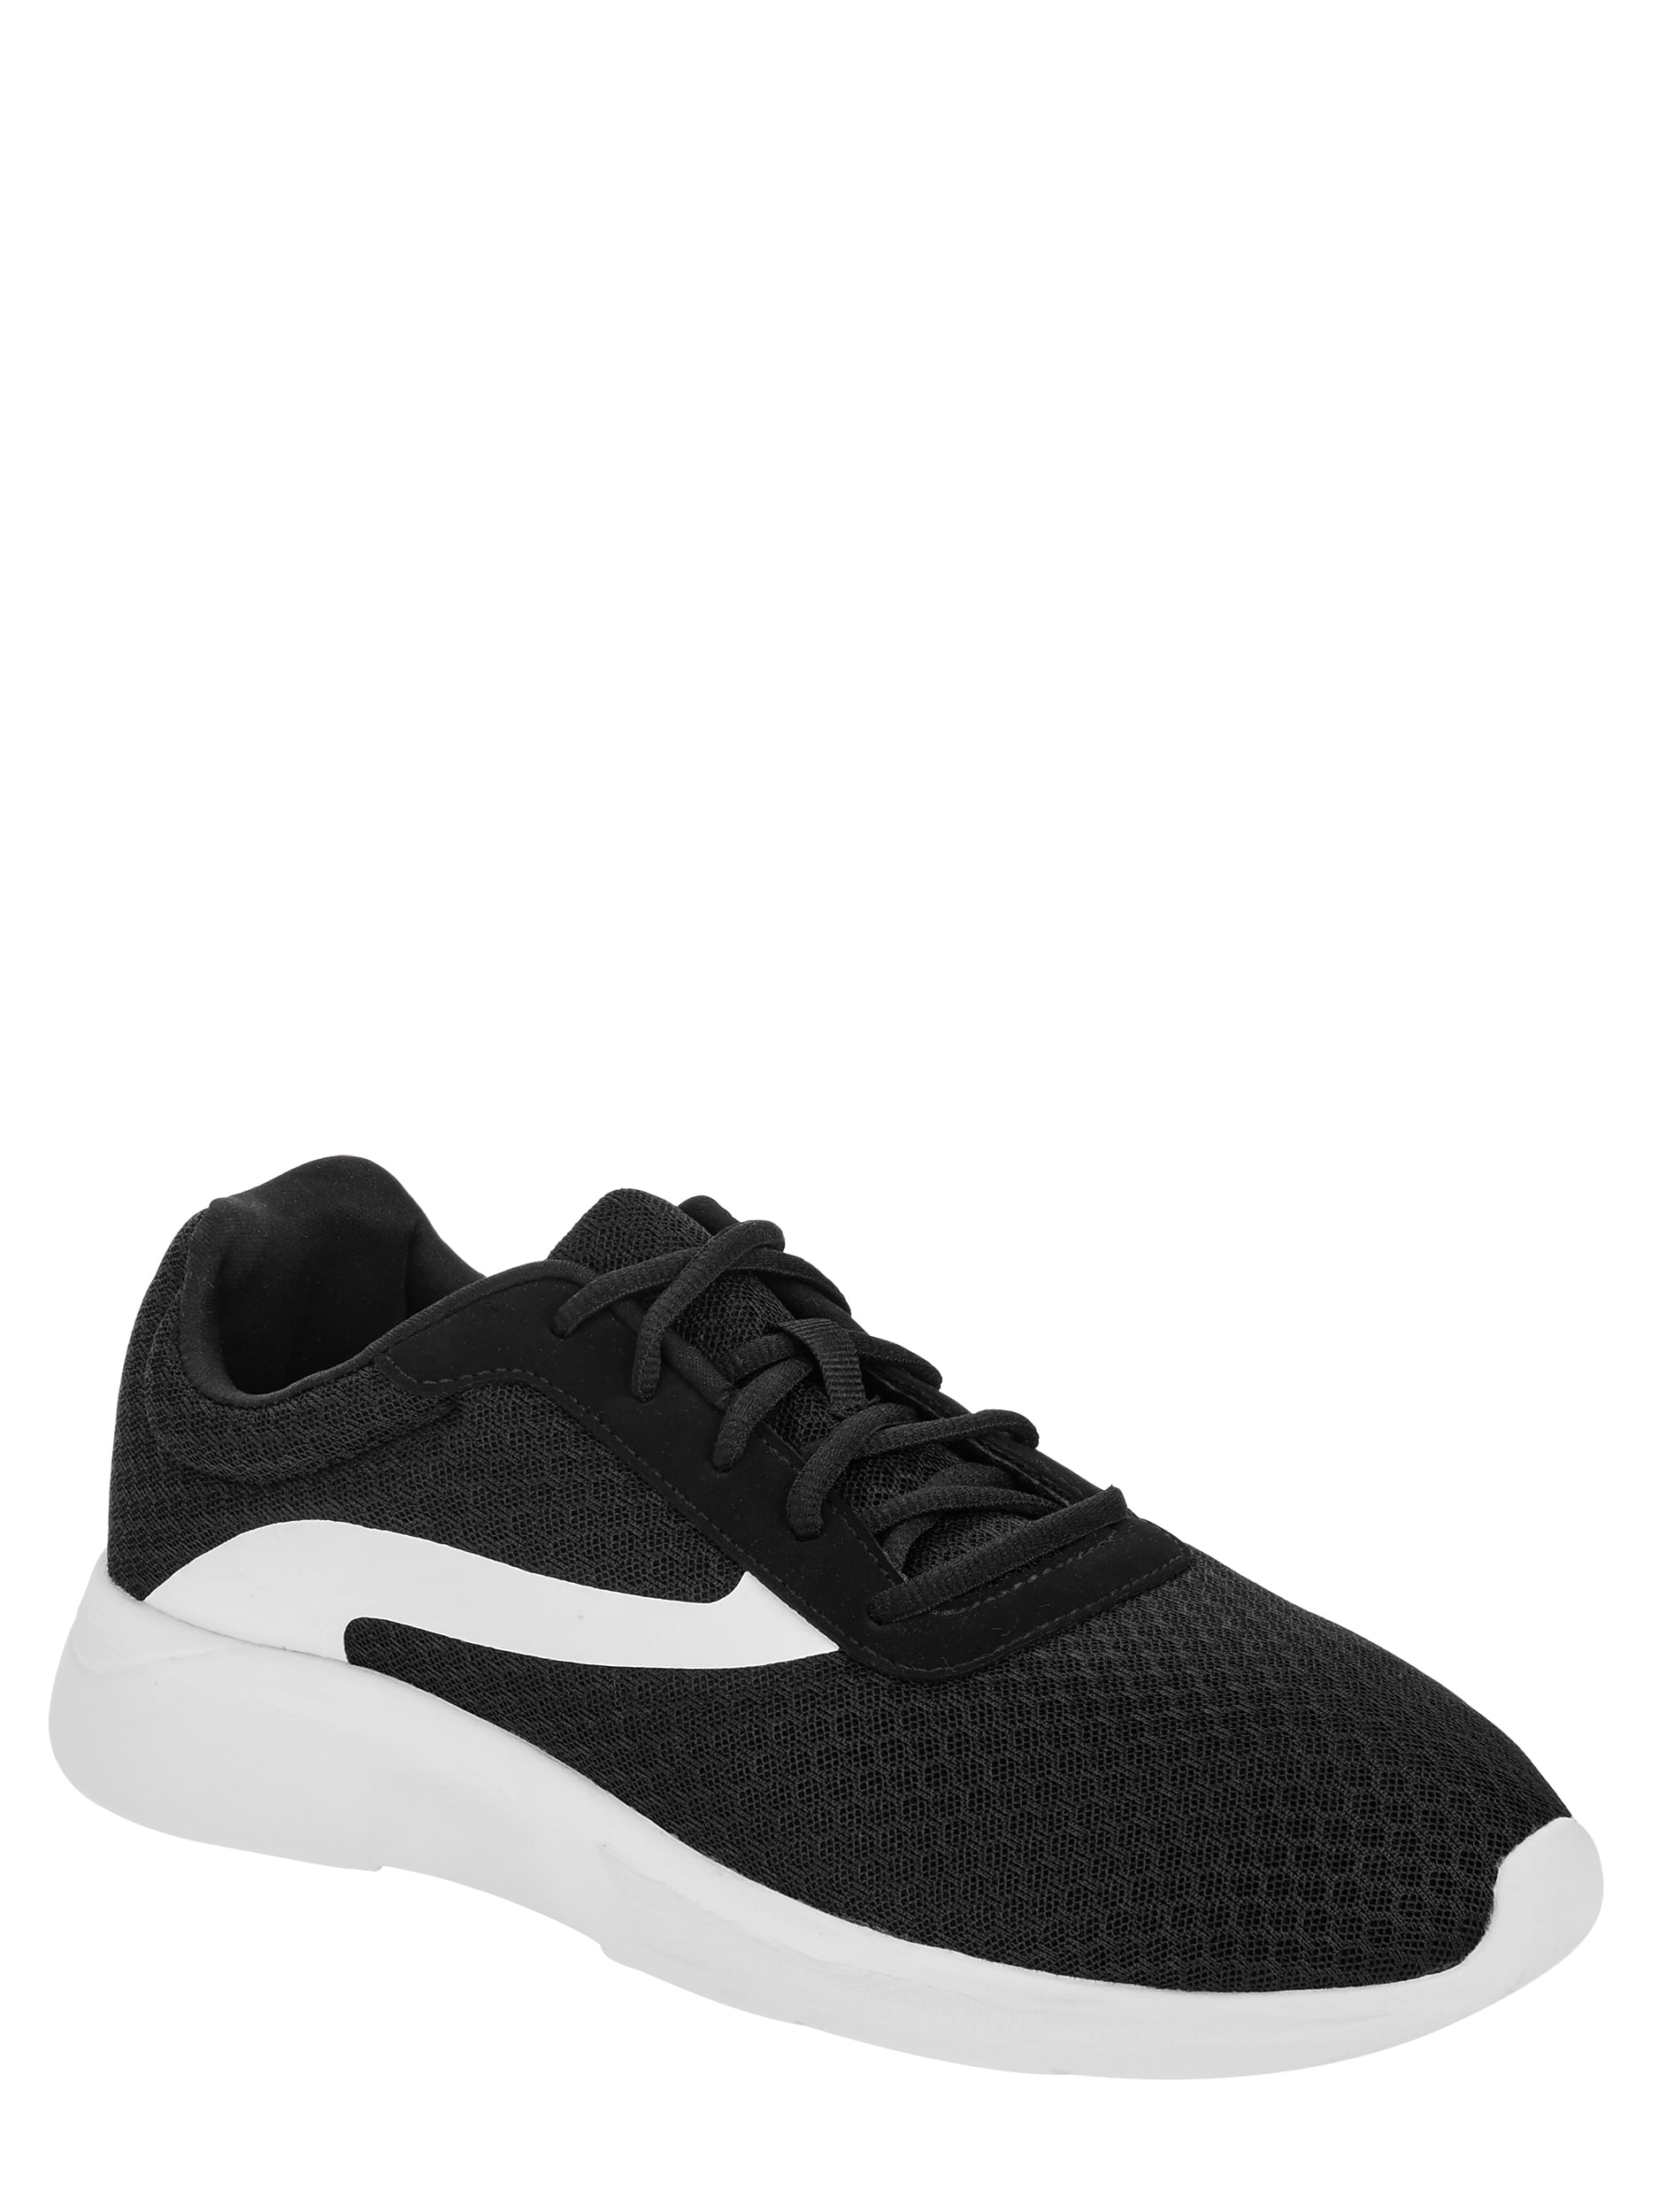 Athletic Works Men's Basic Athletic Shoe by ATHLETIC WORKS